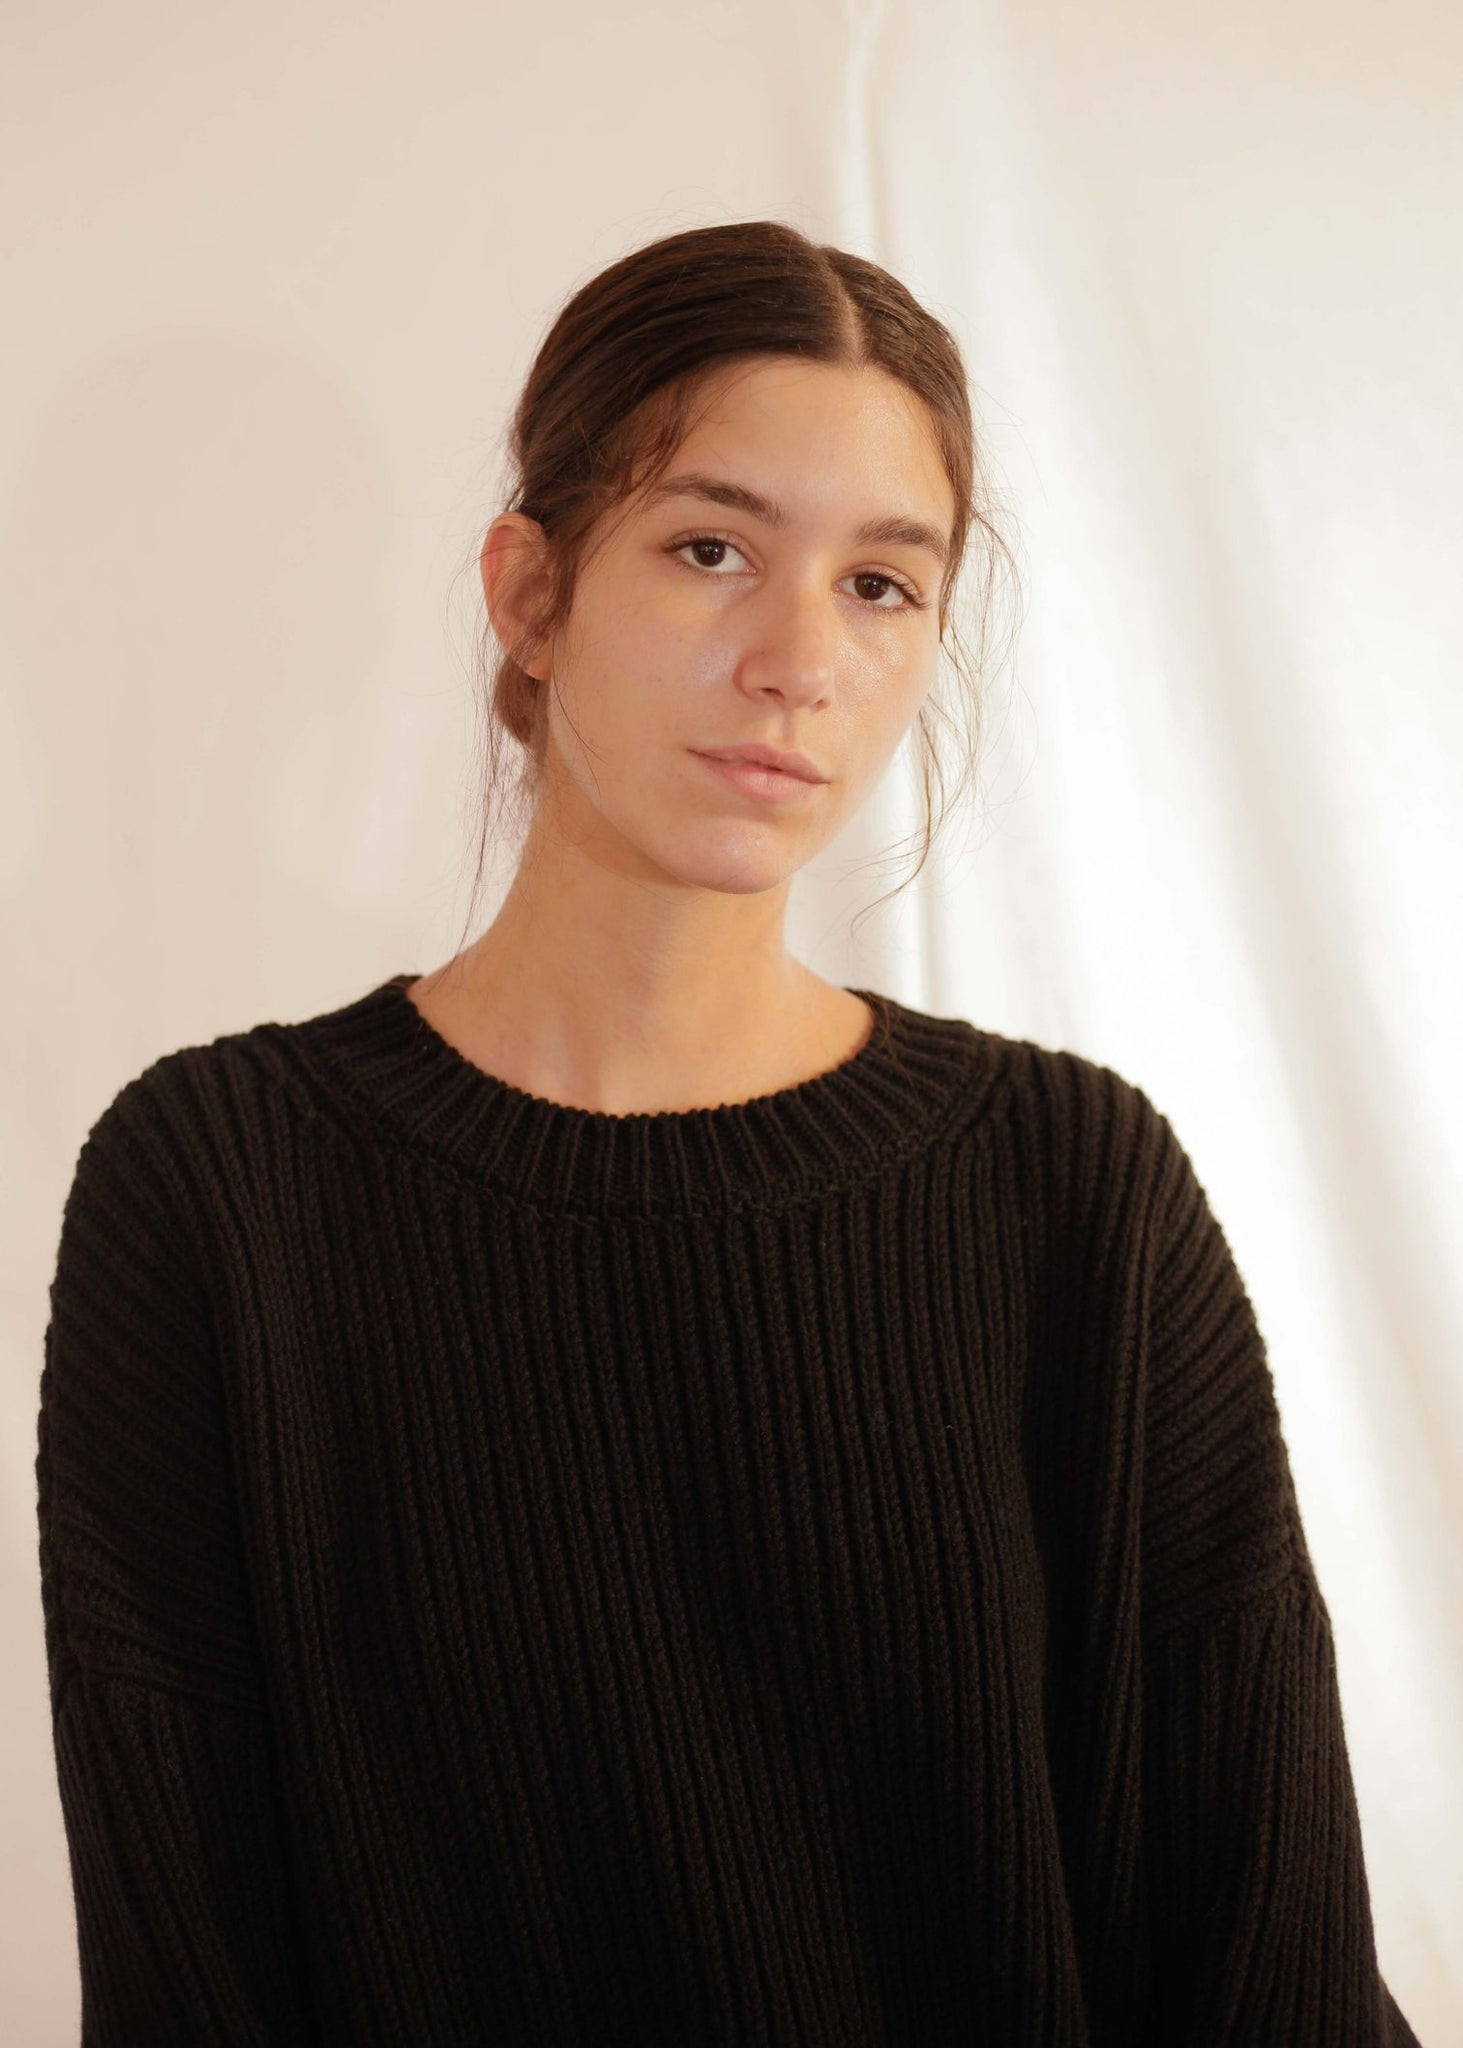 CHUNKY UNISEX KNIT PULLOVER IN BLACK BY CAN PEP REY